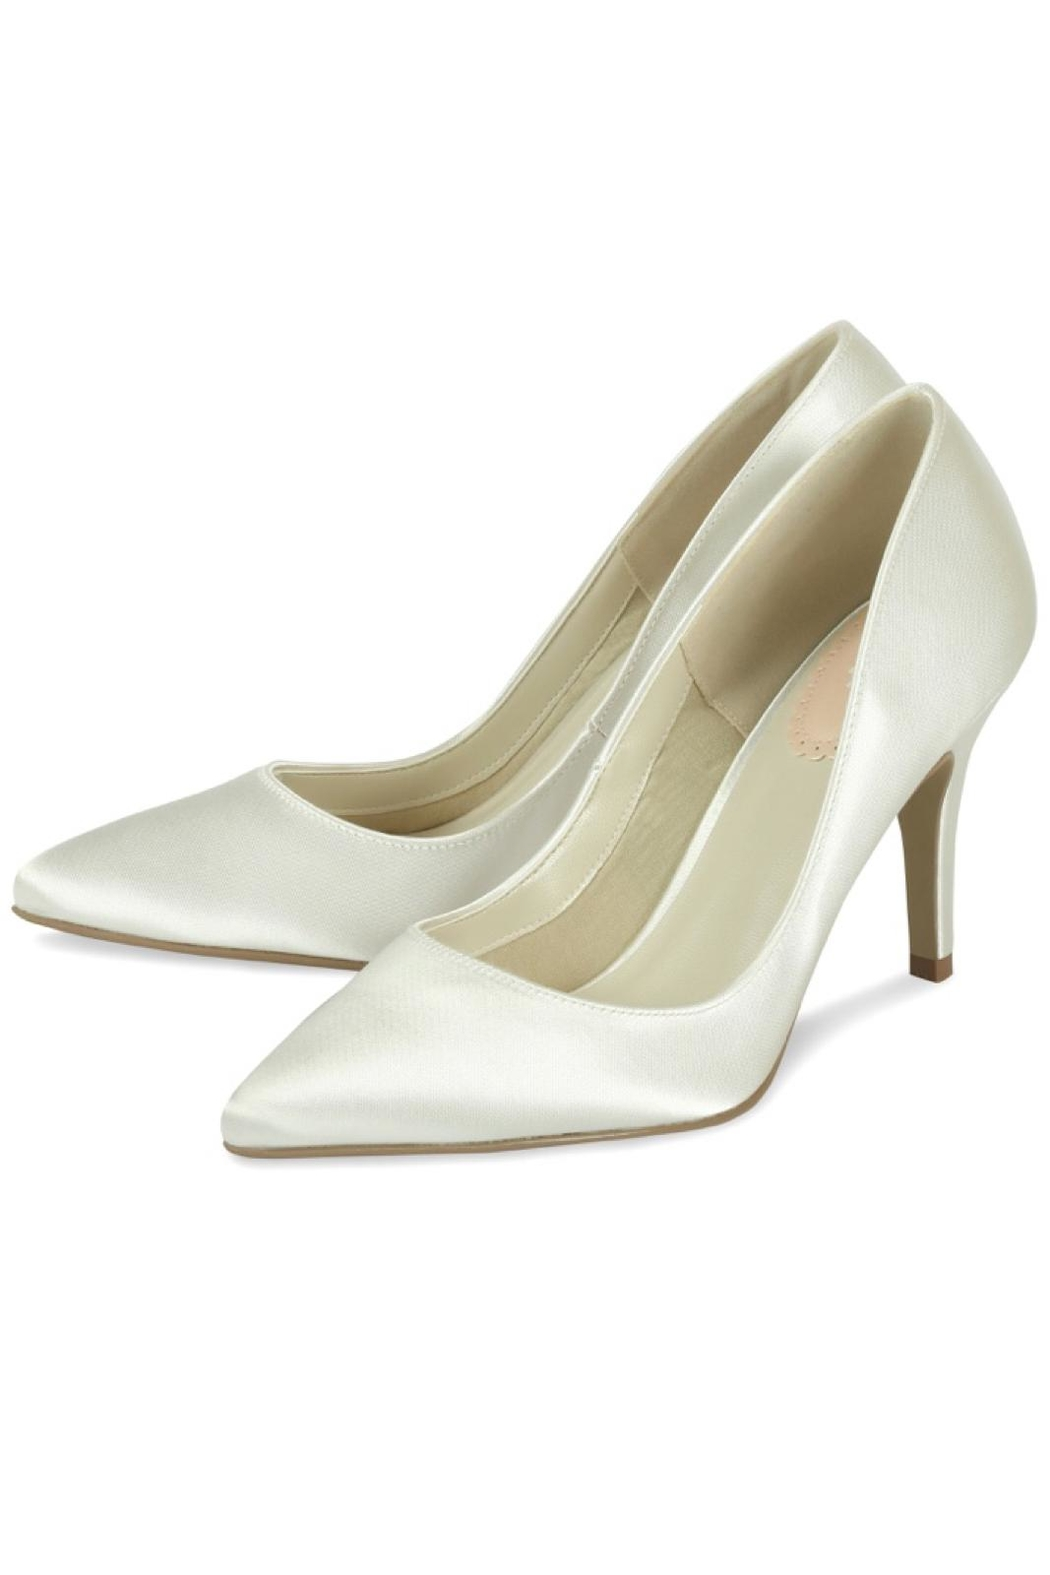 pink paradox London Flush Ivory Satin Shoes - Front Full Image